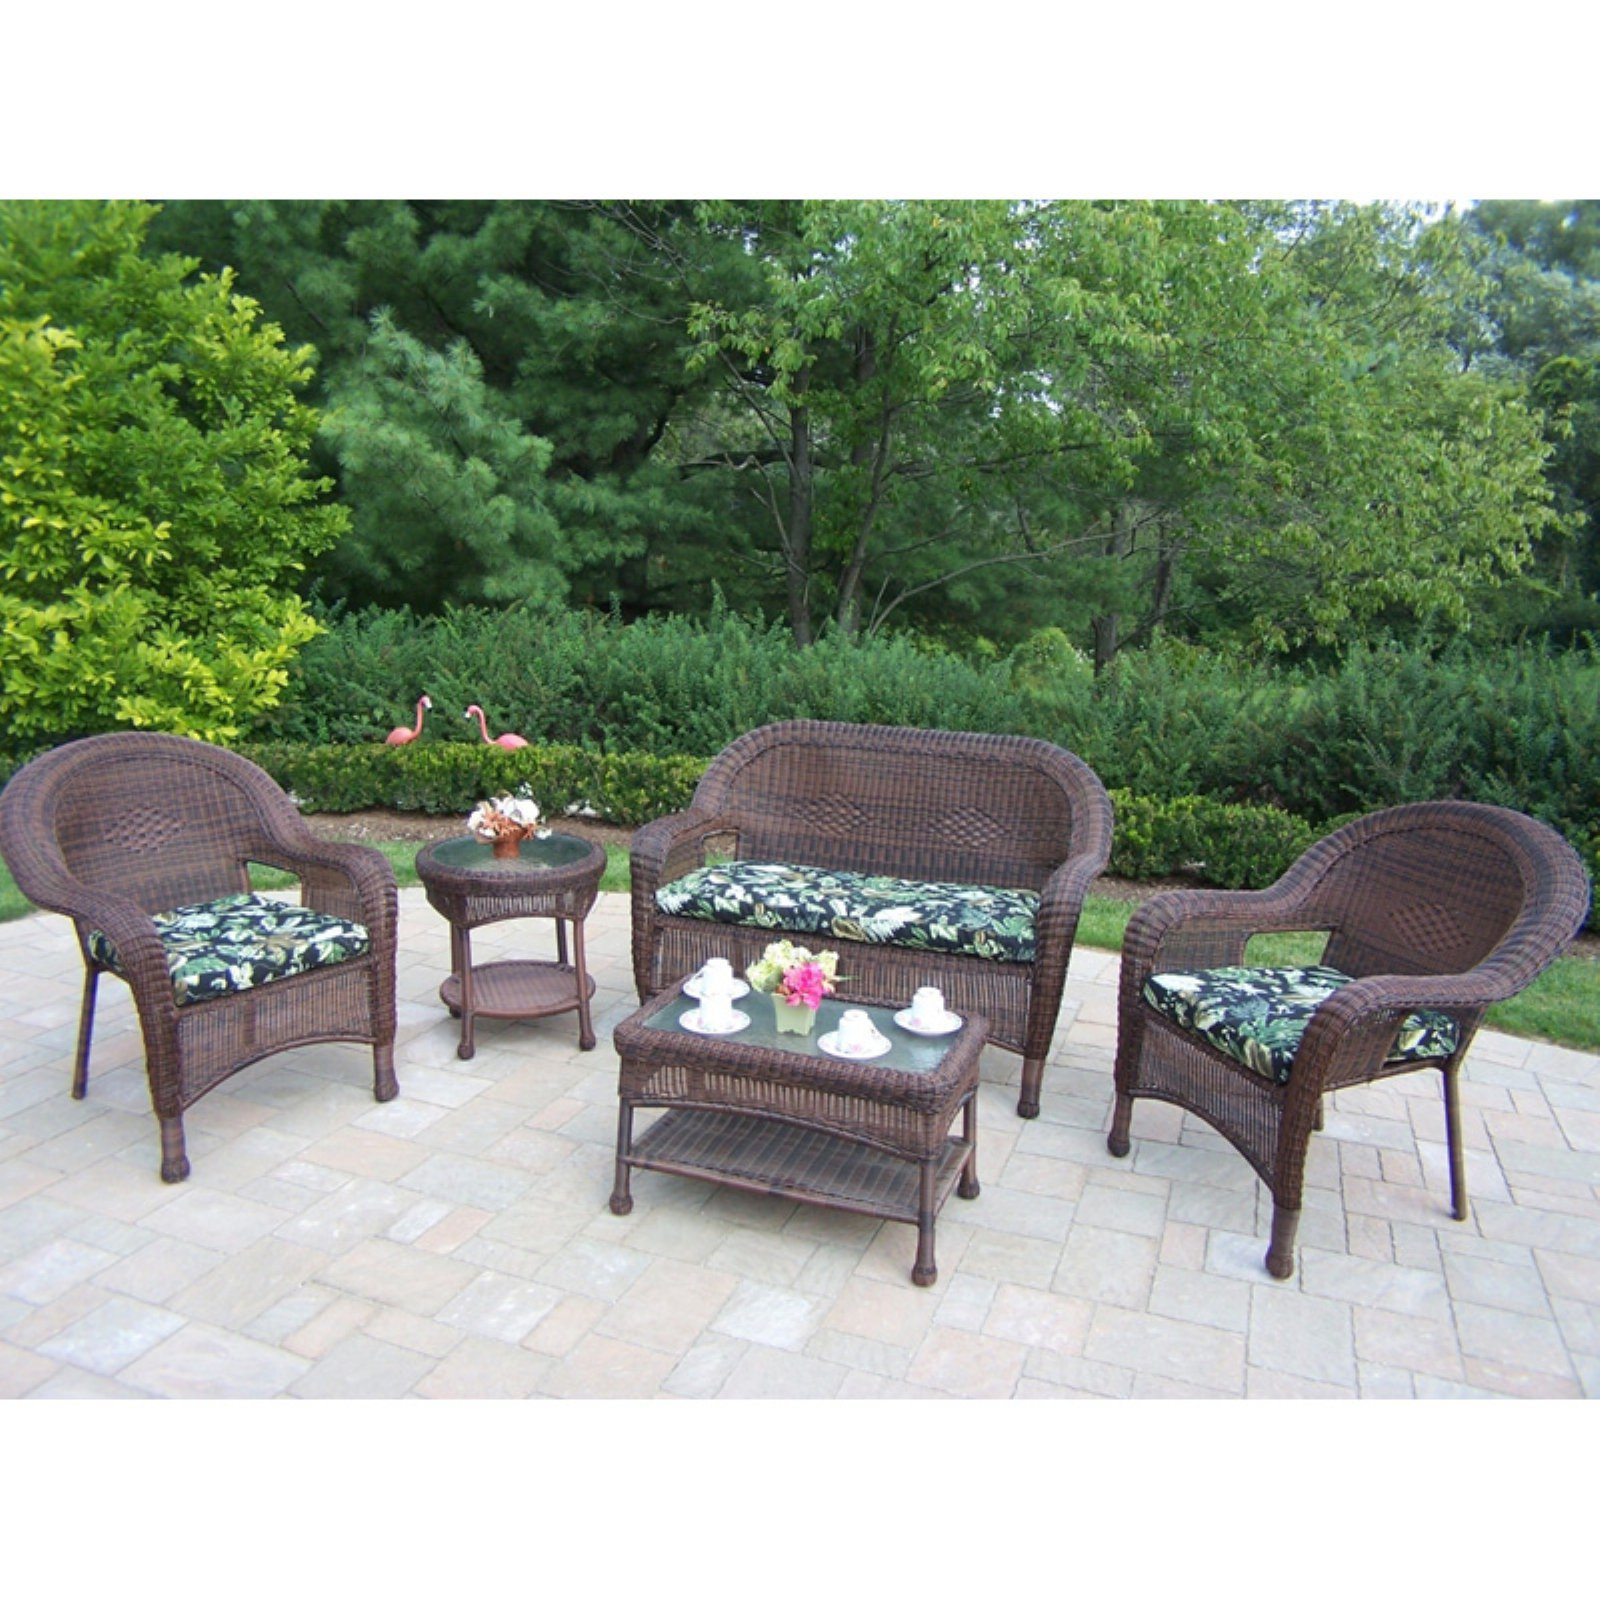 Oakland All-Weather Wicker Deluxe Conversation Set - Seats 4